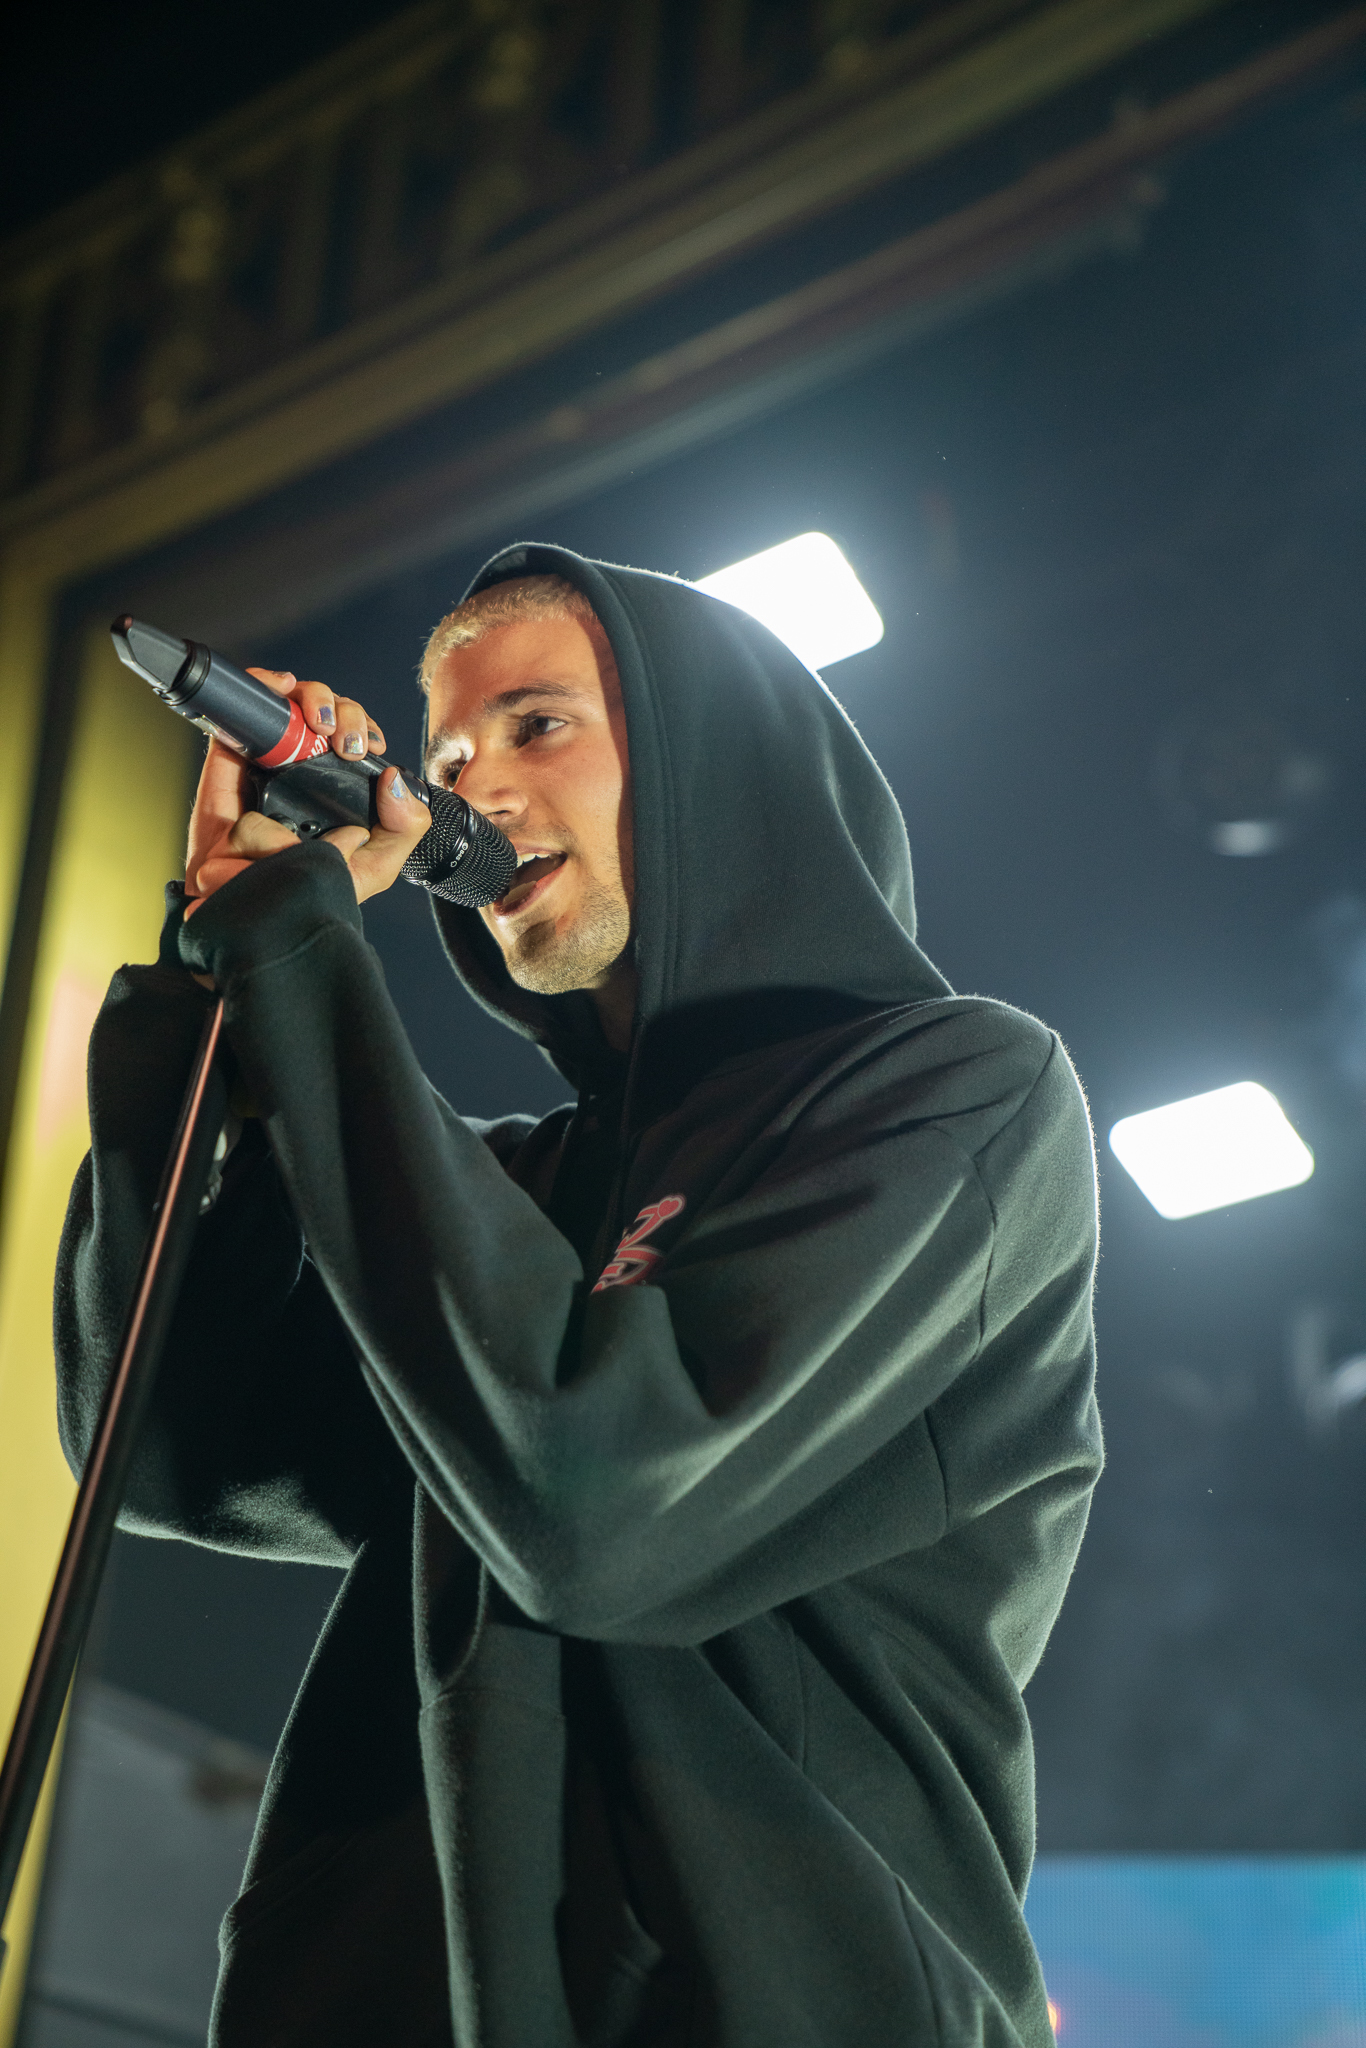 This is a photo of Jeremy Zucker performing at Webster Hall during his fall 2019 US tour.